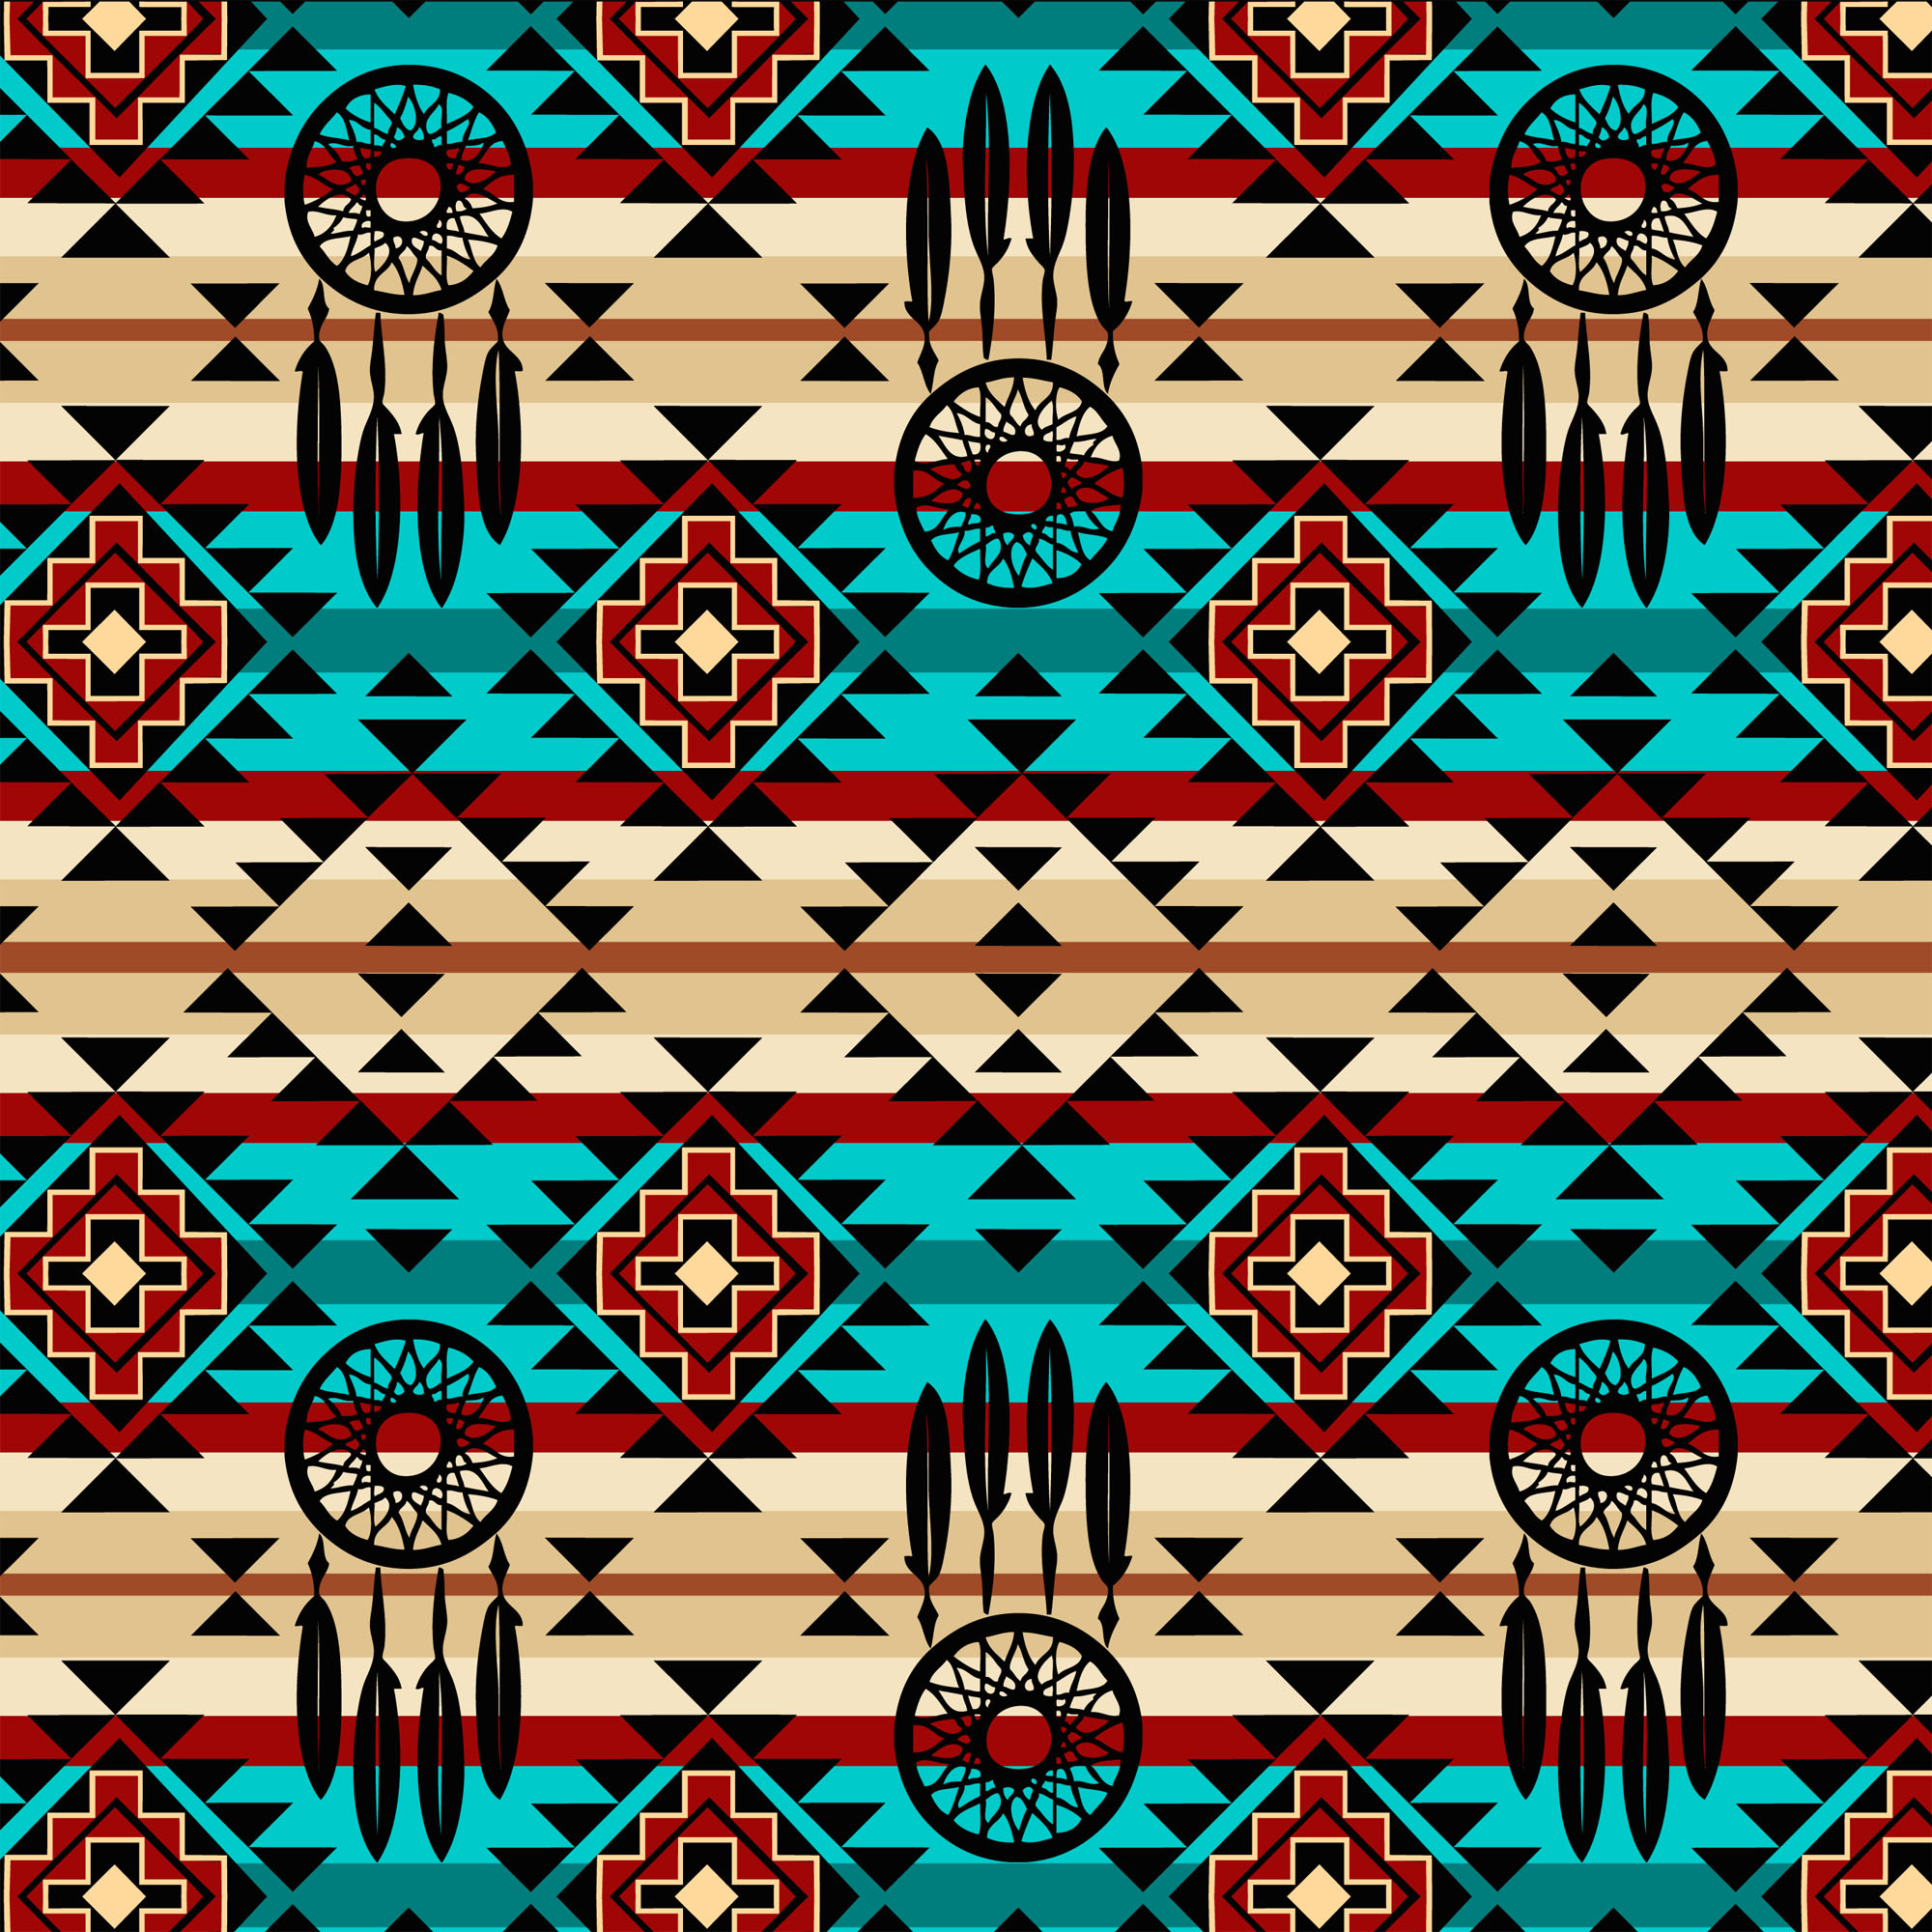 David Textiles Cotton Precut Fabric Native Spirit Collection 1 Yd X 44 Inches